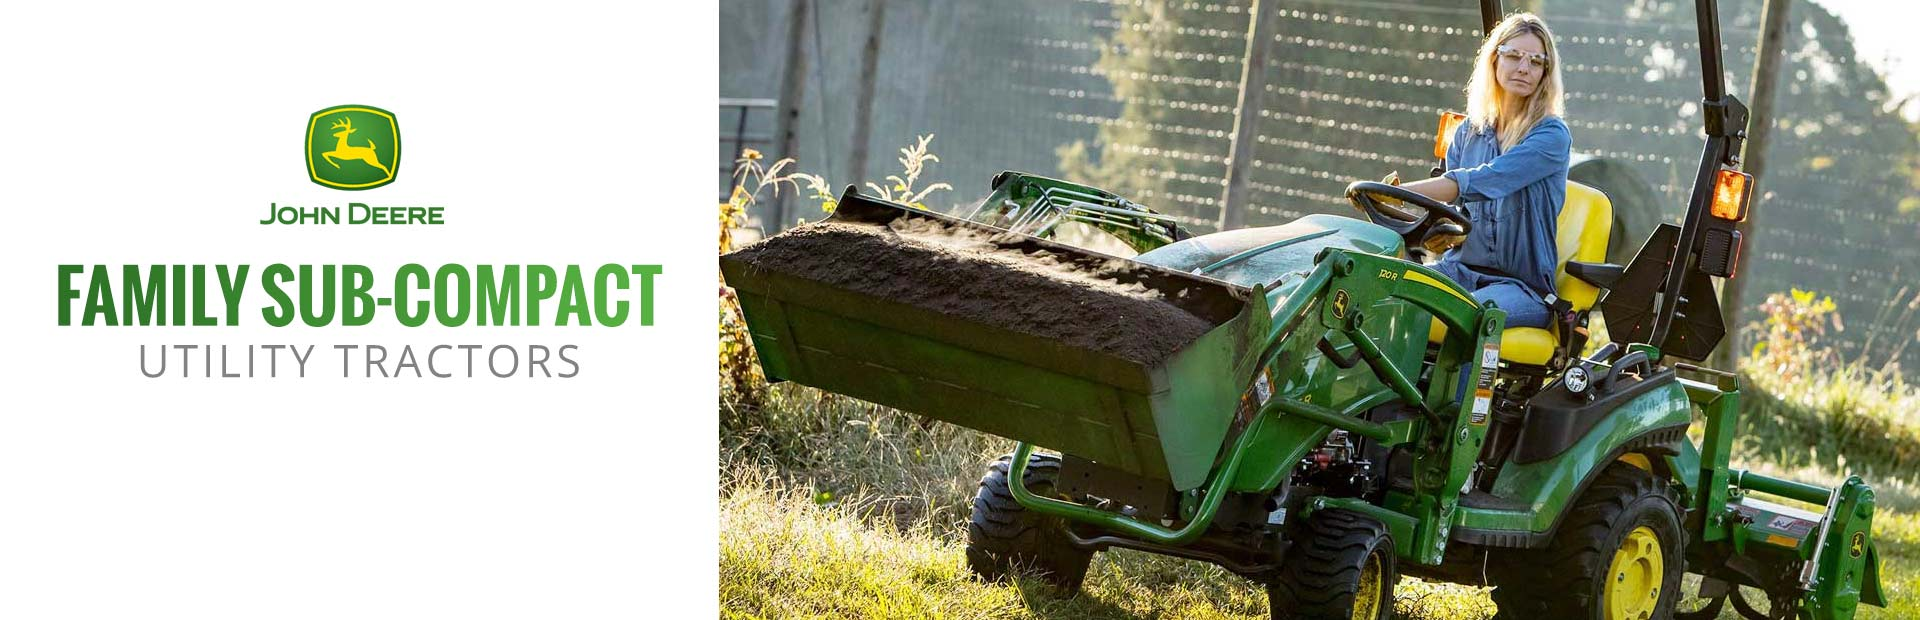 Family Sub-Compact Utility Tractors